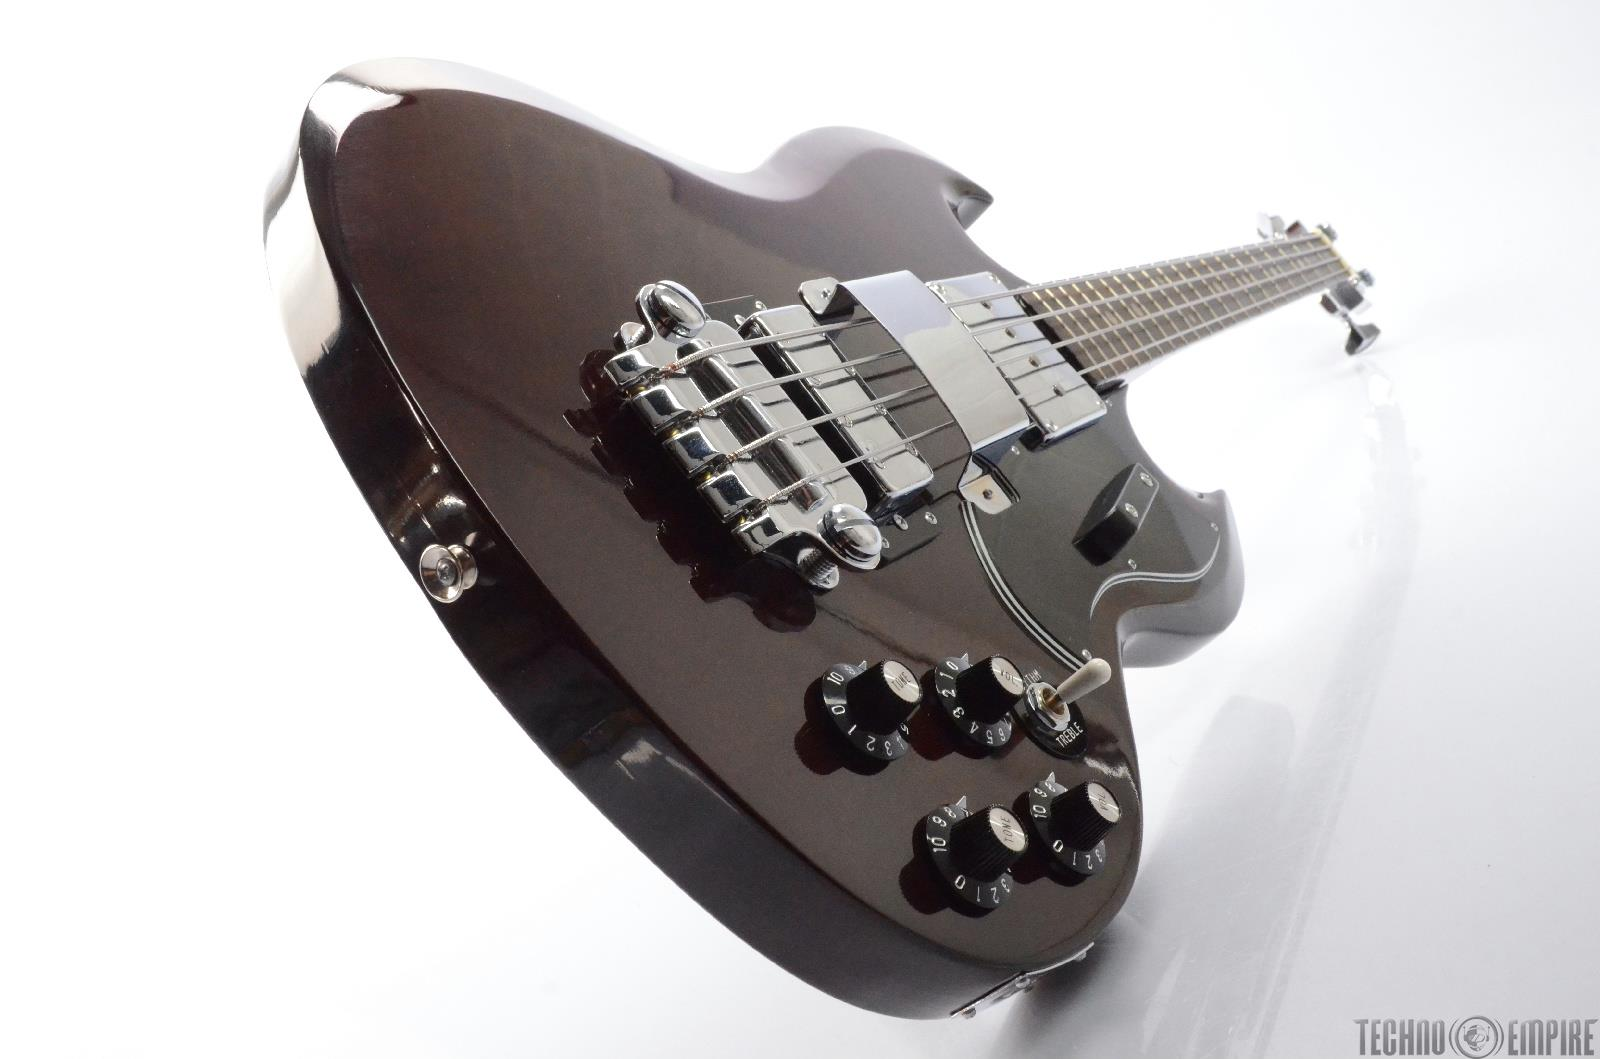 vintage ariel greco emperador sg electric bass guitar made in japan 26382 ebay. Black Bedroom Furniture Sets. Home Design Ideas